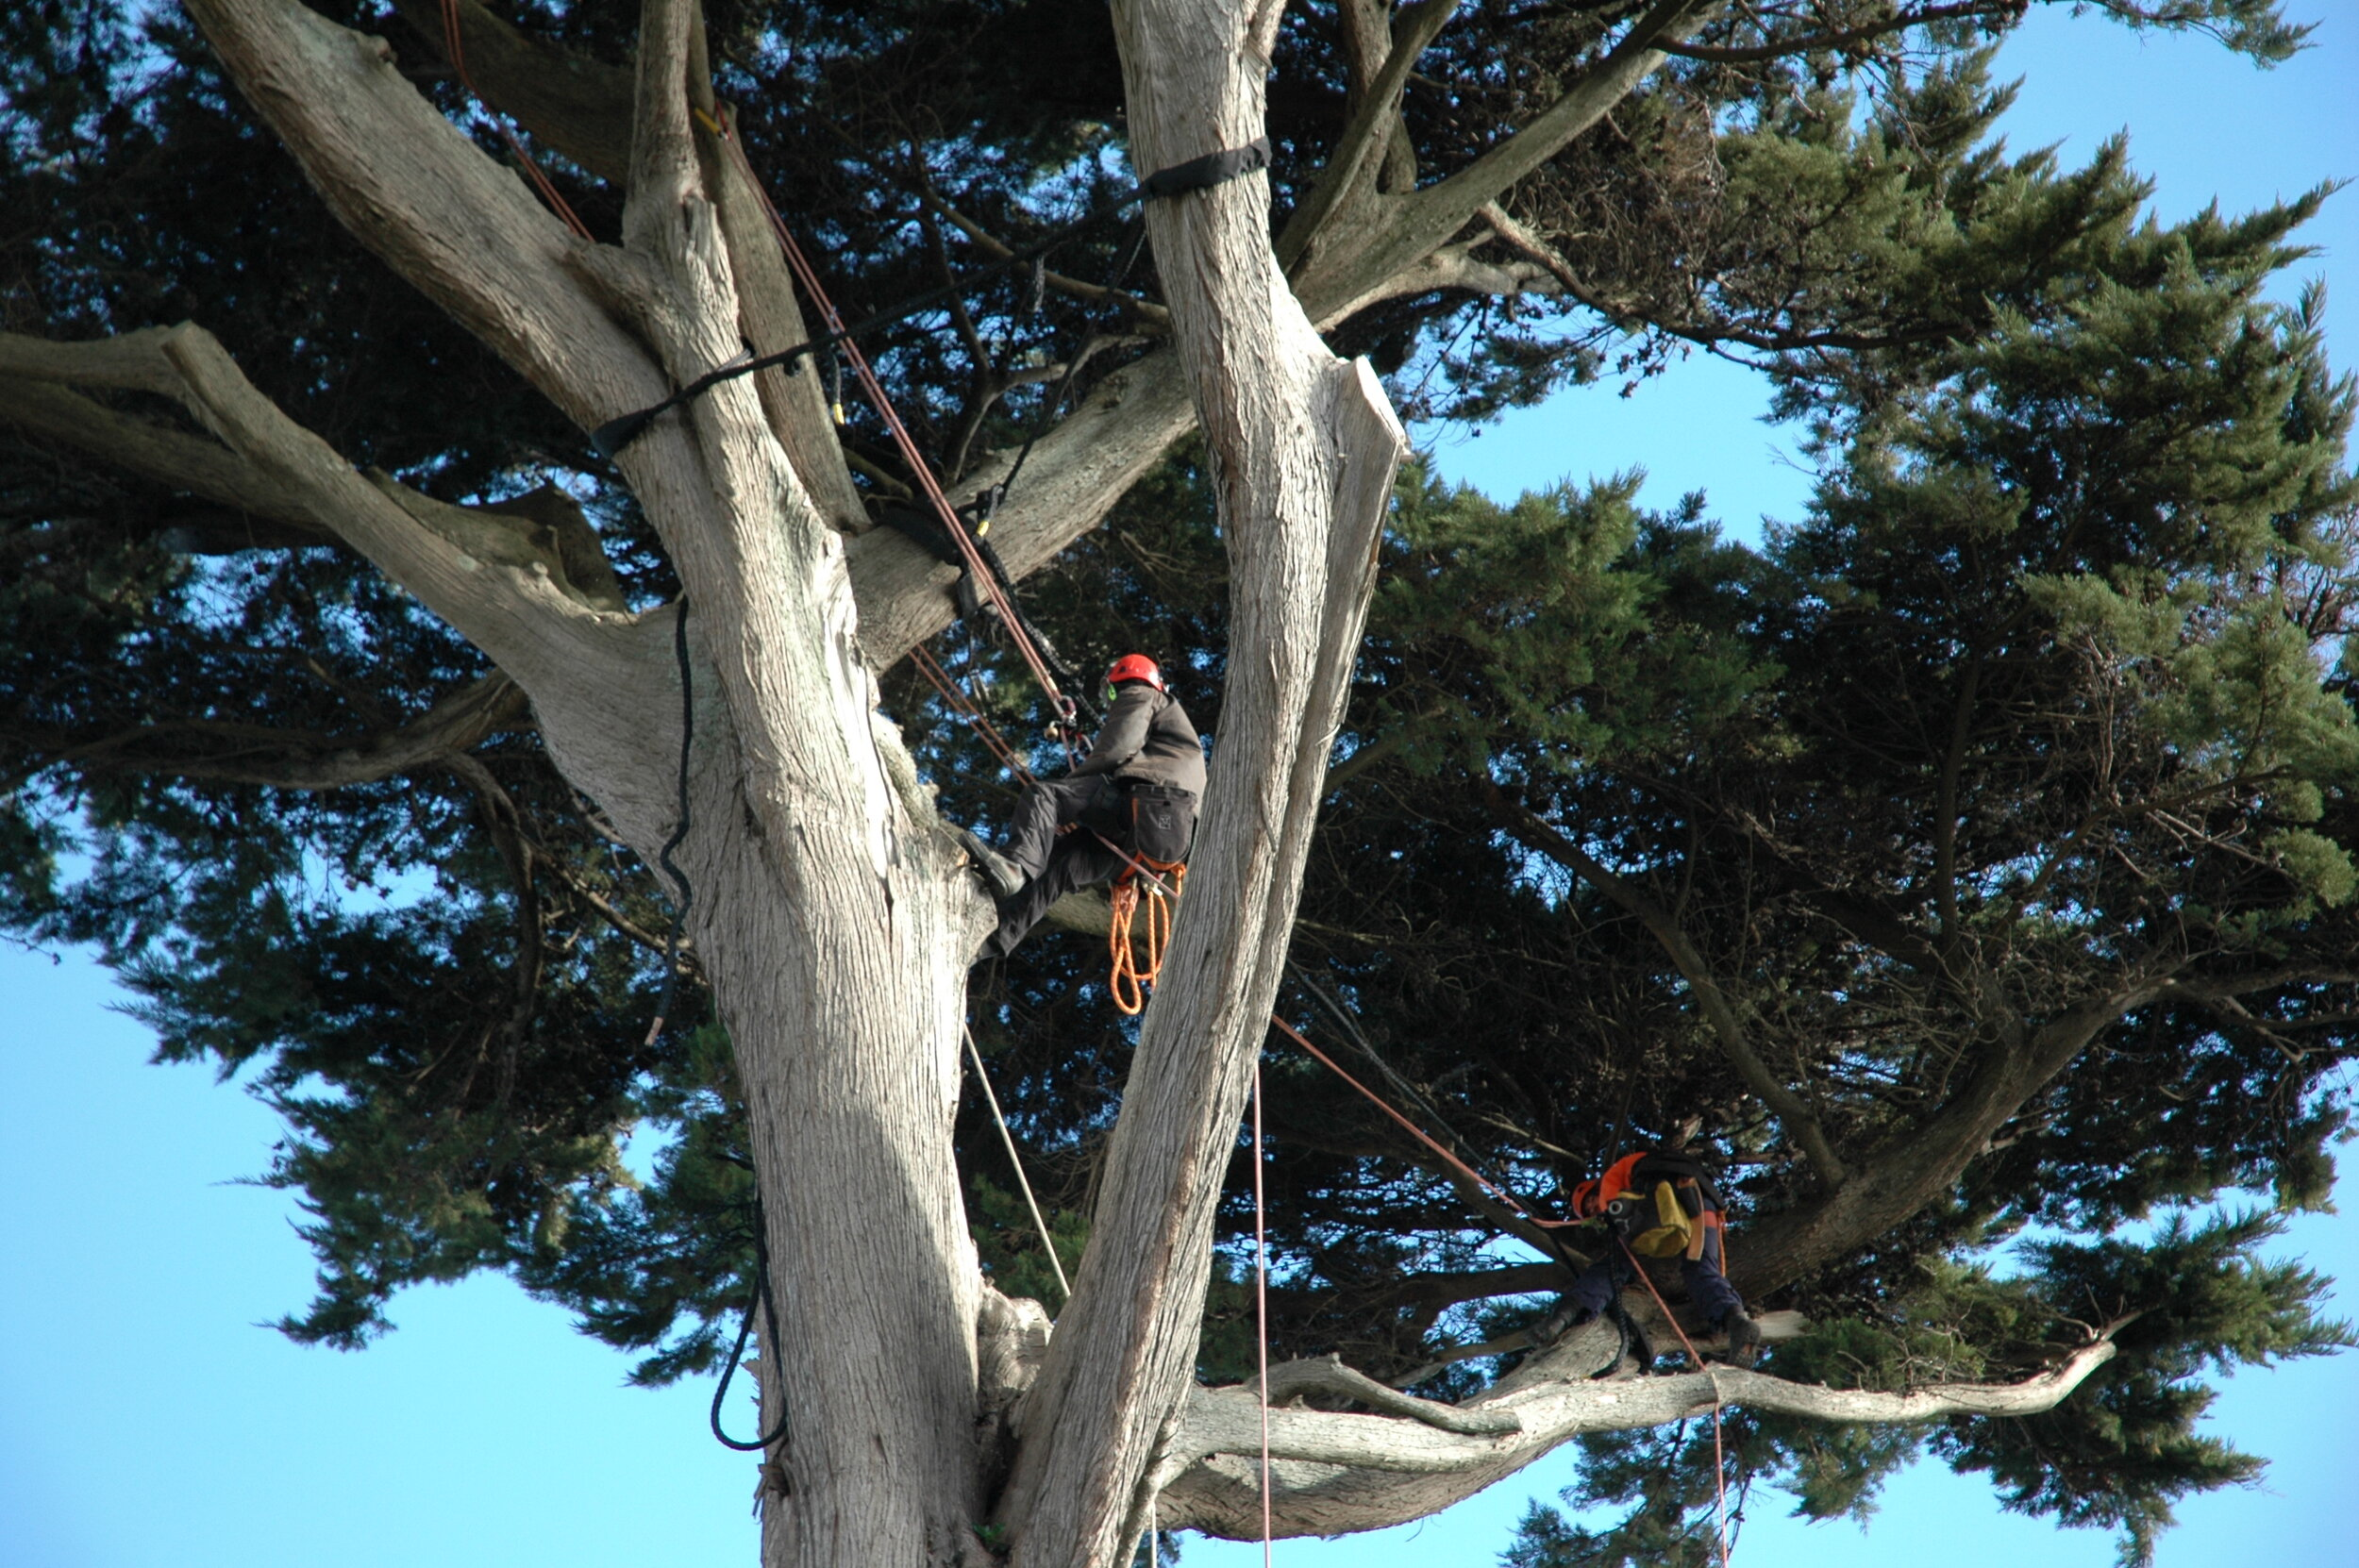 Expert Advice - We specialise in all aspects of tree work and can undertake any services required, offering the best advice available